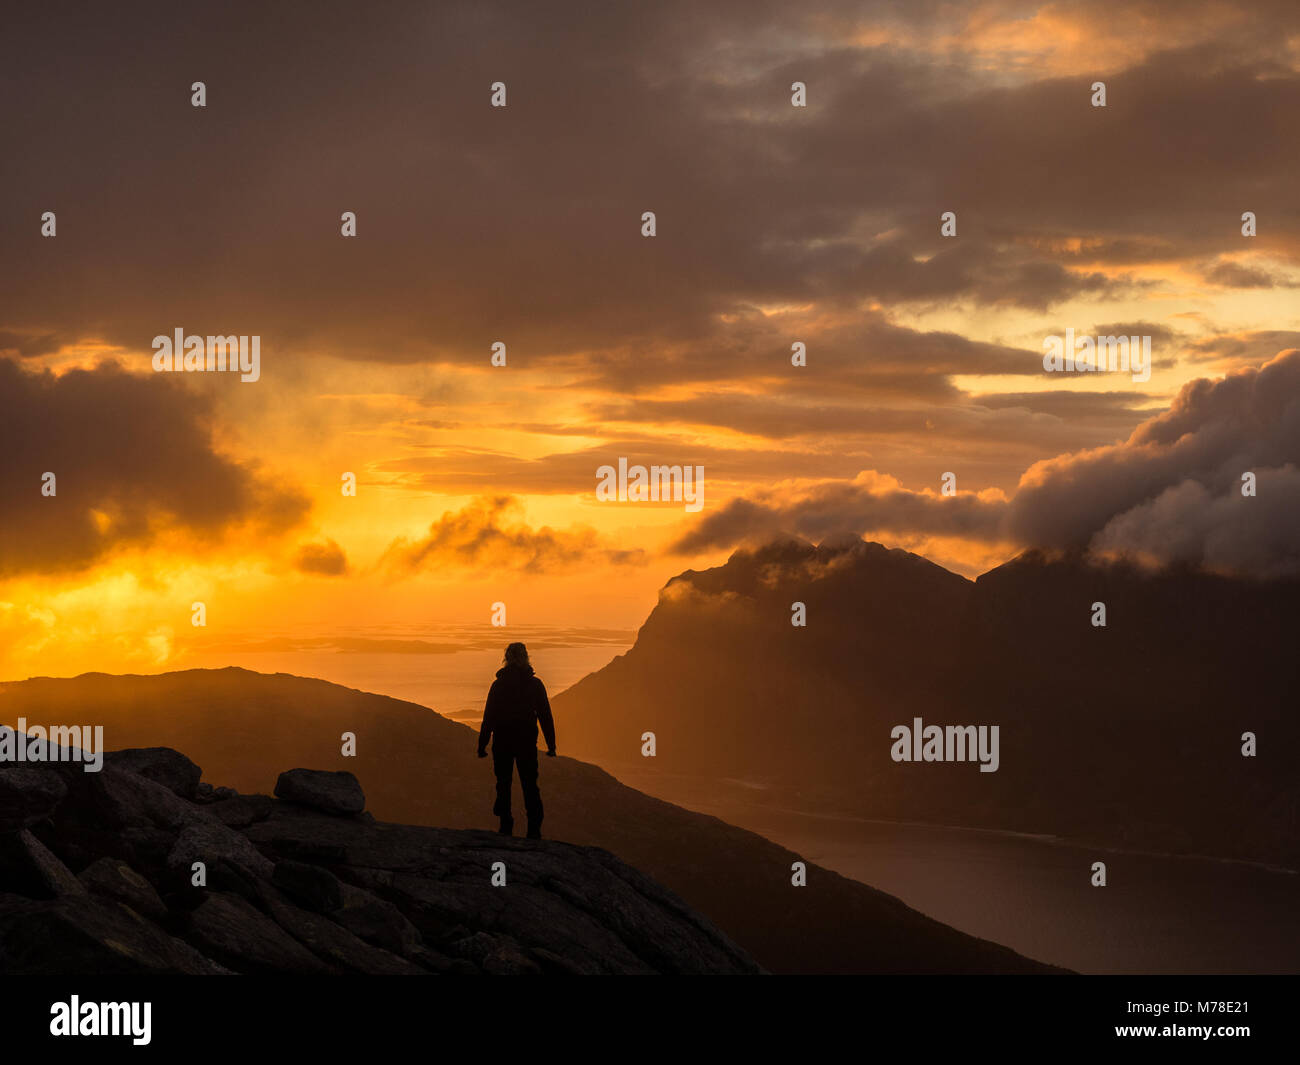 Eine Person in Silhouette einen Sonnenuntergang am Kjerringøy in Nordnorwegen. Stockbild